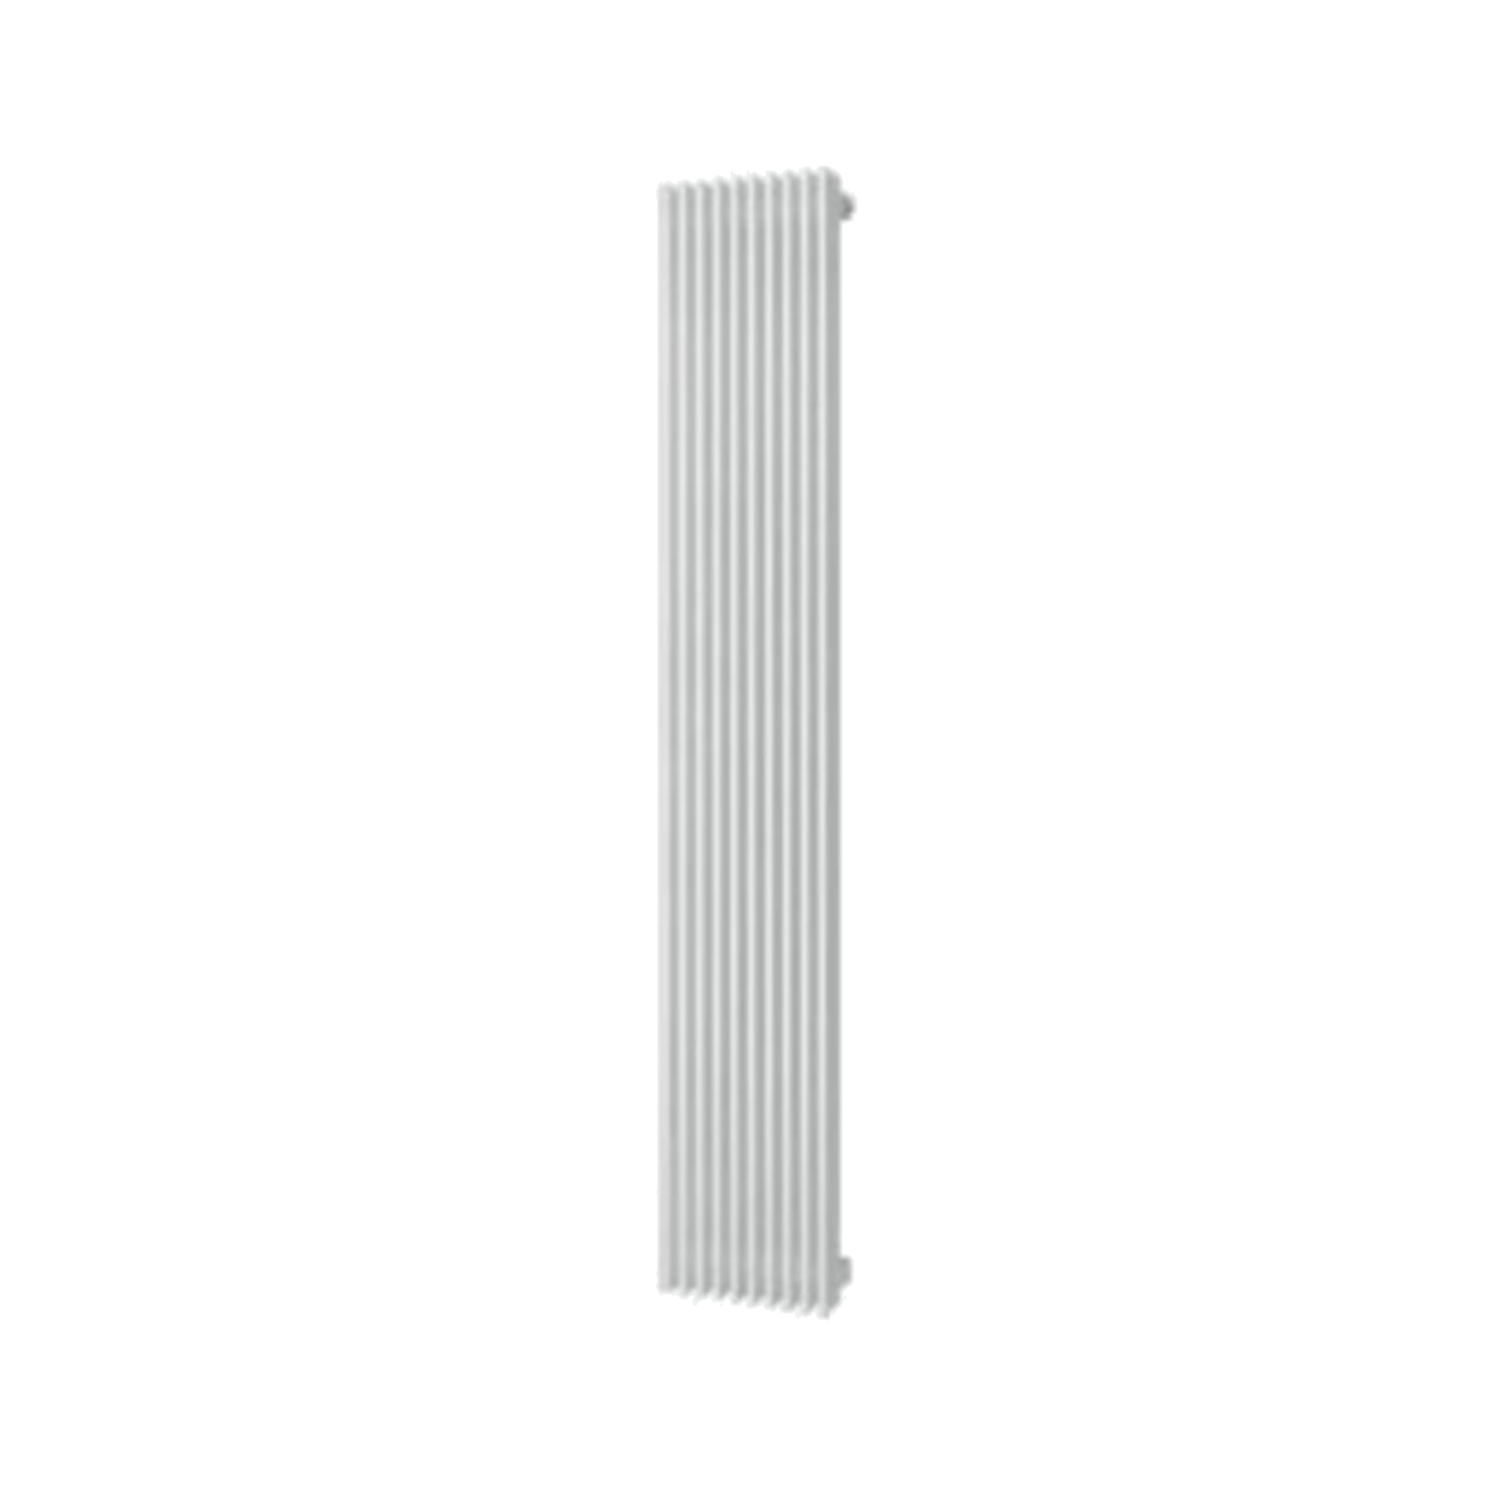 Plieger Antika Retto designradiator verticaal middenaansluiting 1800x295mm 1111W wit